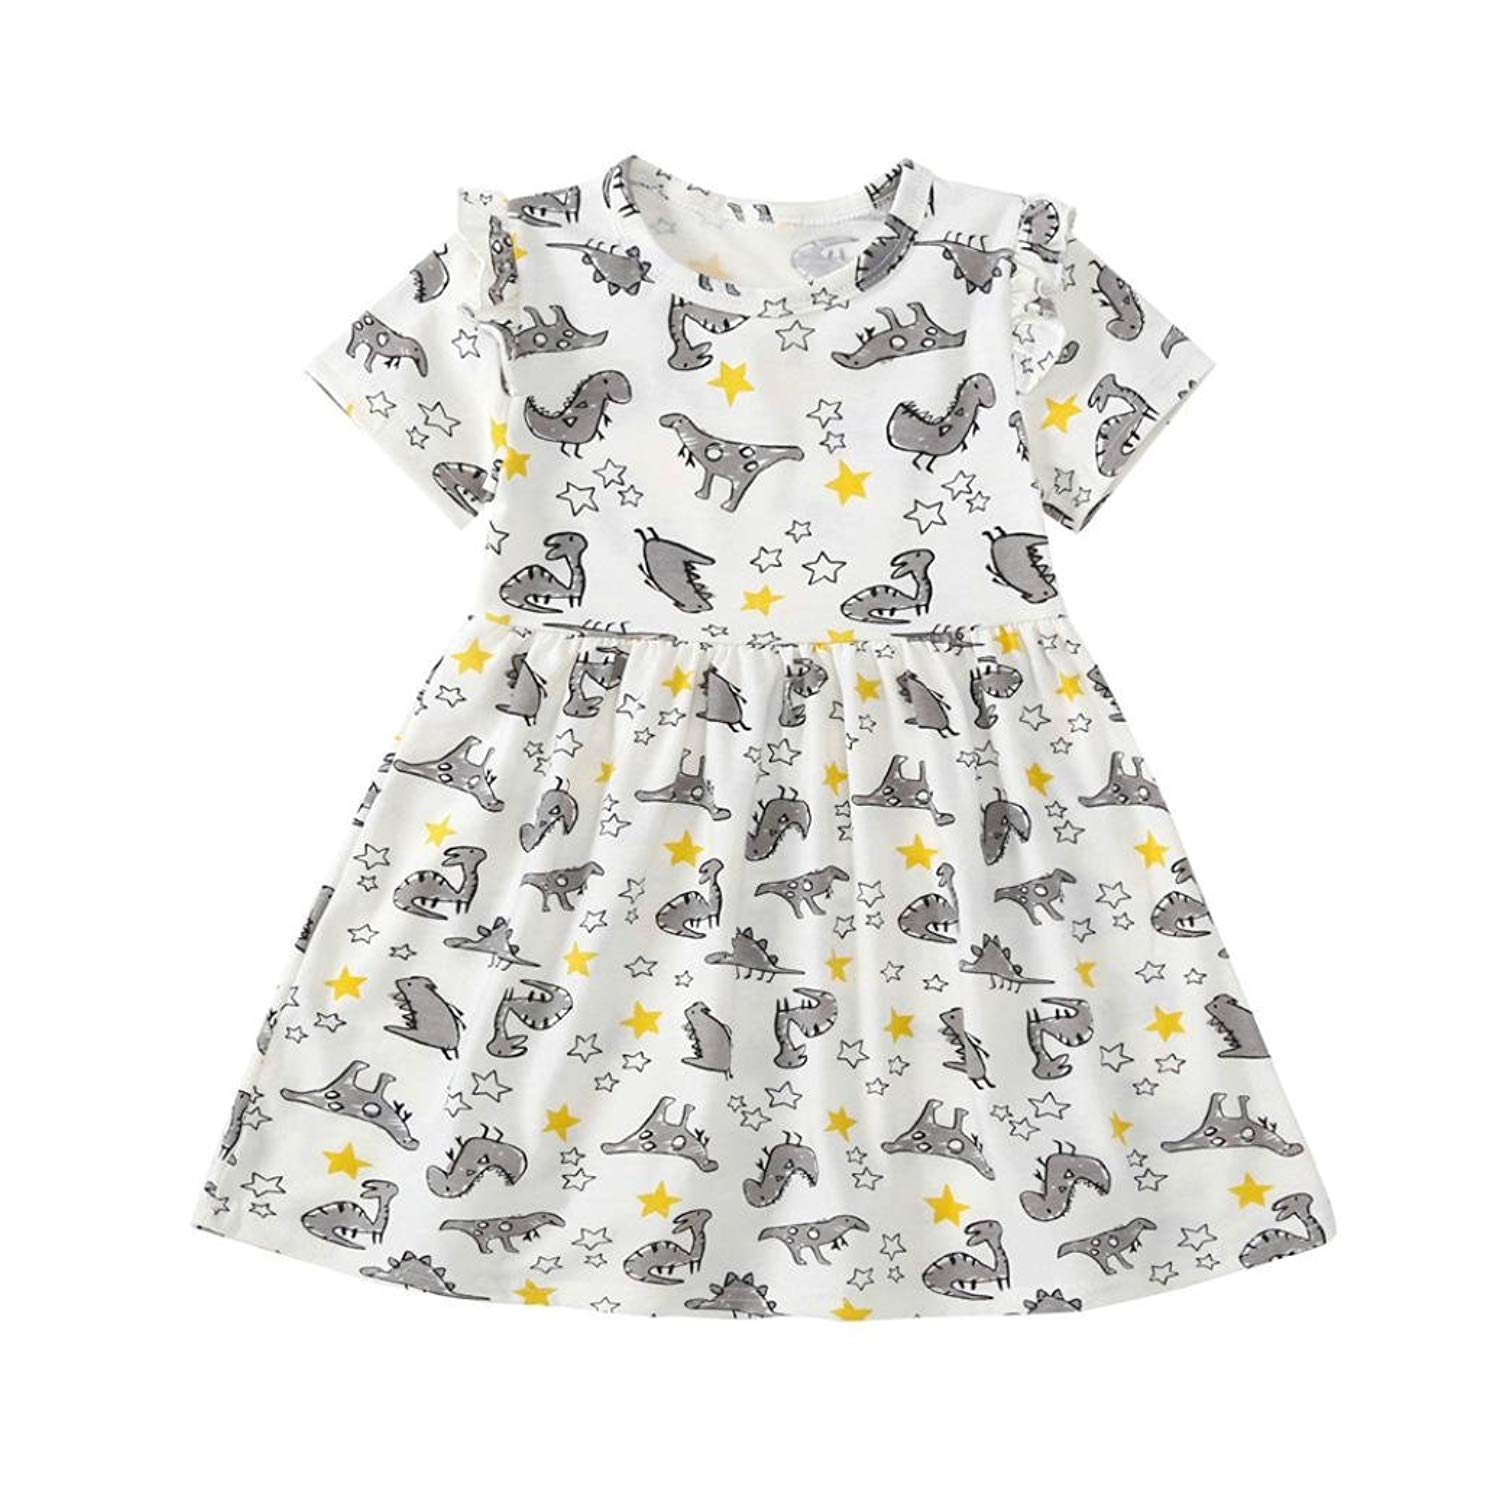 9aada5e0afb9 Hibro Toddler Baby Girls Cute Dinosaur Printing Dress Infant Kids Sundress  Casual Dresses Summer Outfit Clothes